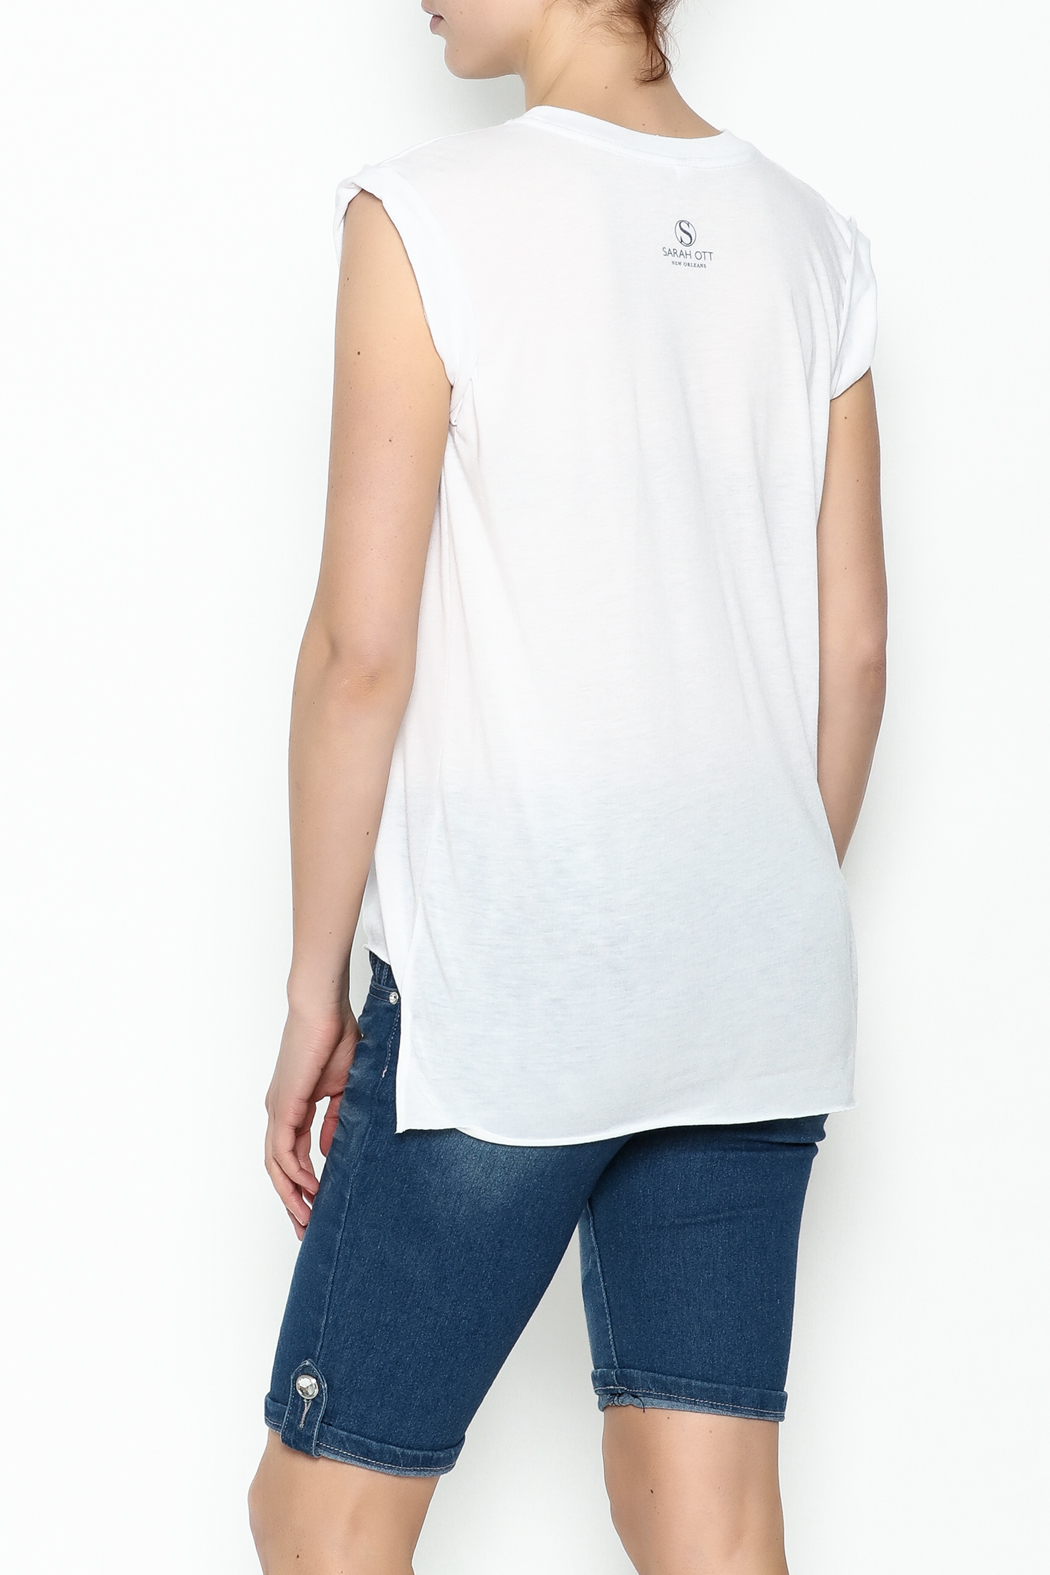 Sarah Ott Rolled Cuff Muscle Tee - Back Cropped Image